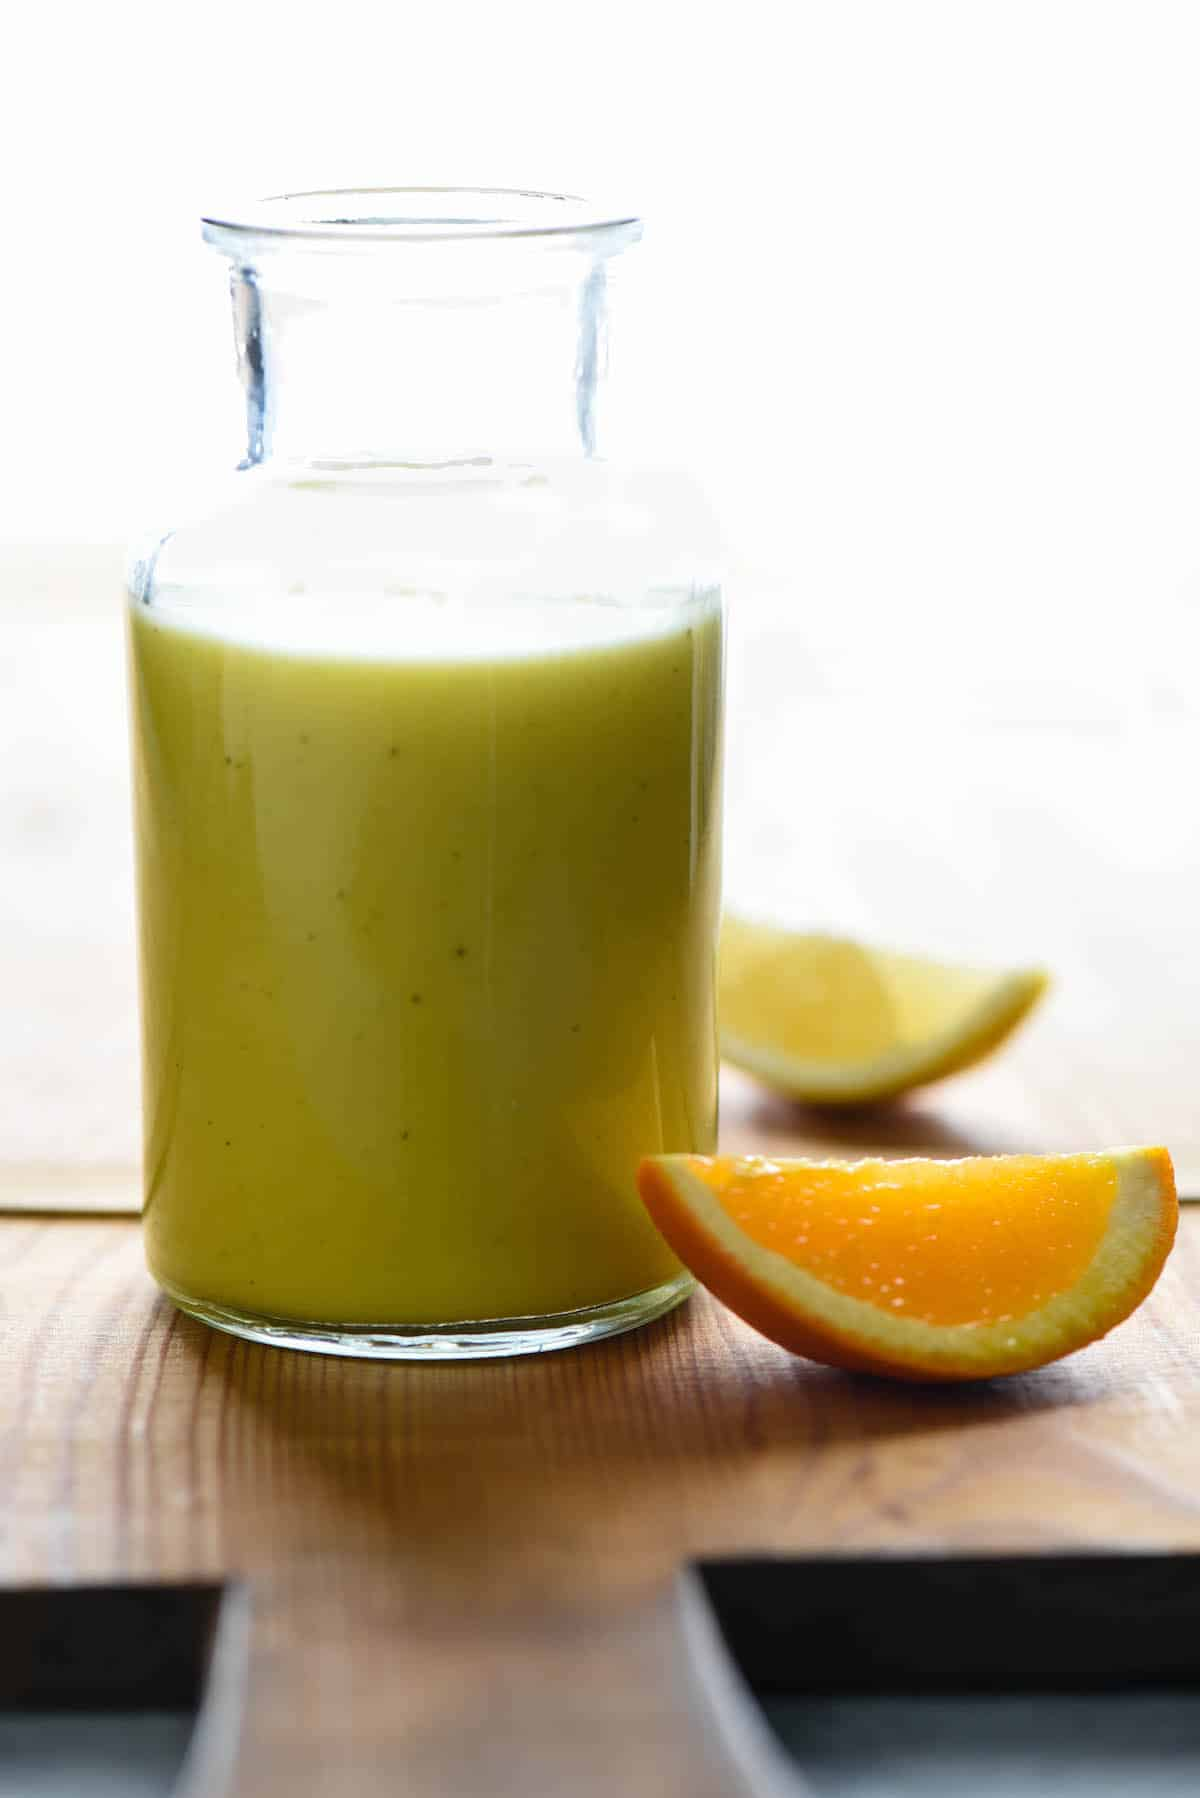 Forget store bought salad dressing. This homemade Citrus Salad Dressing recipe takes just 5 minutes and will be healthier, fresher and more delicious. | foxeslovelemons.com